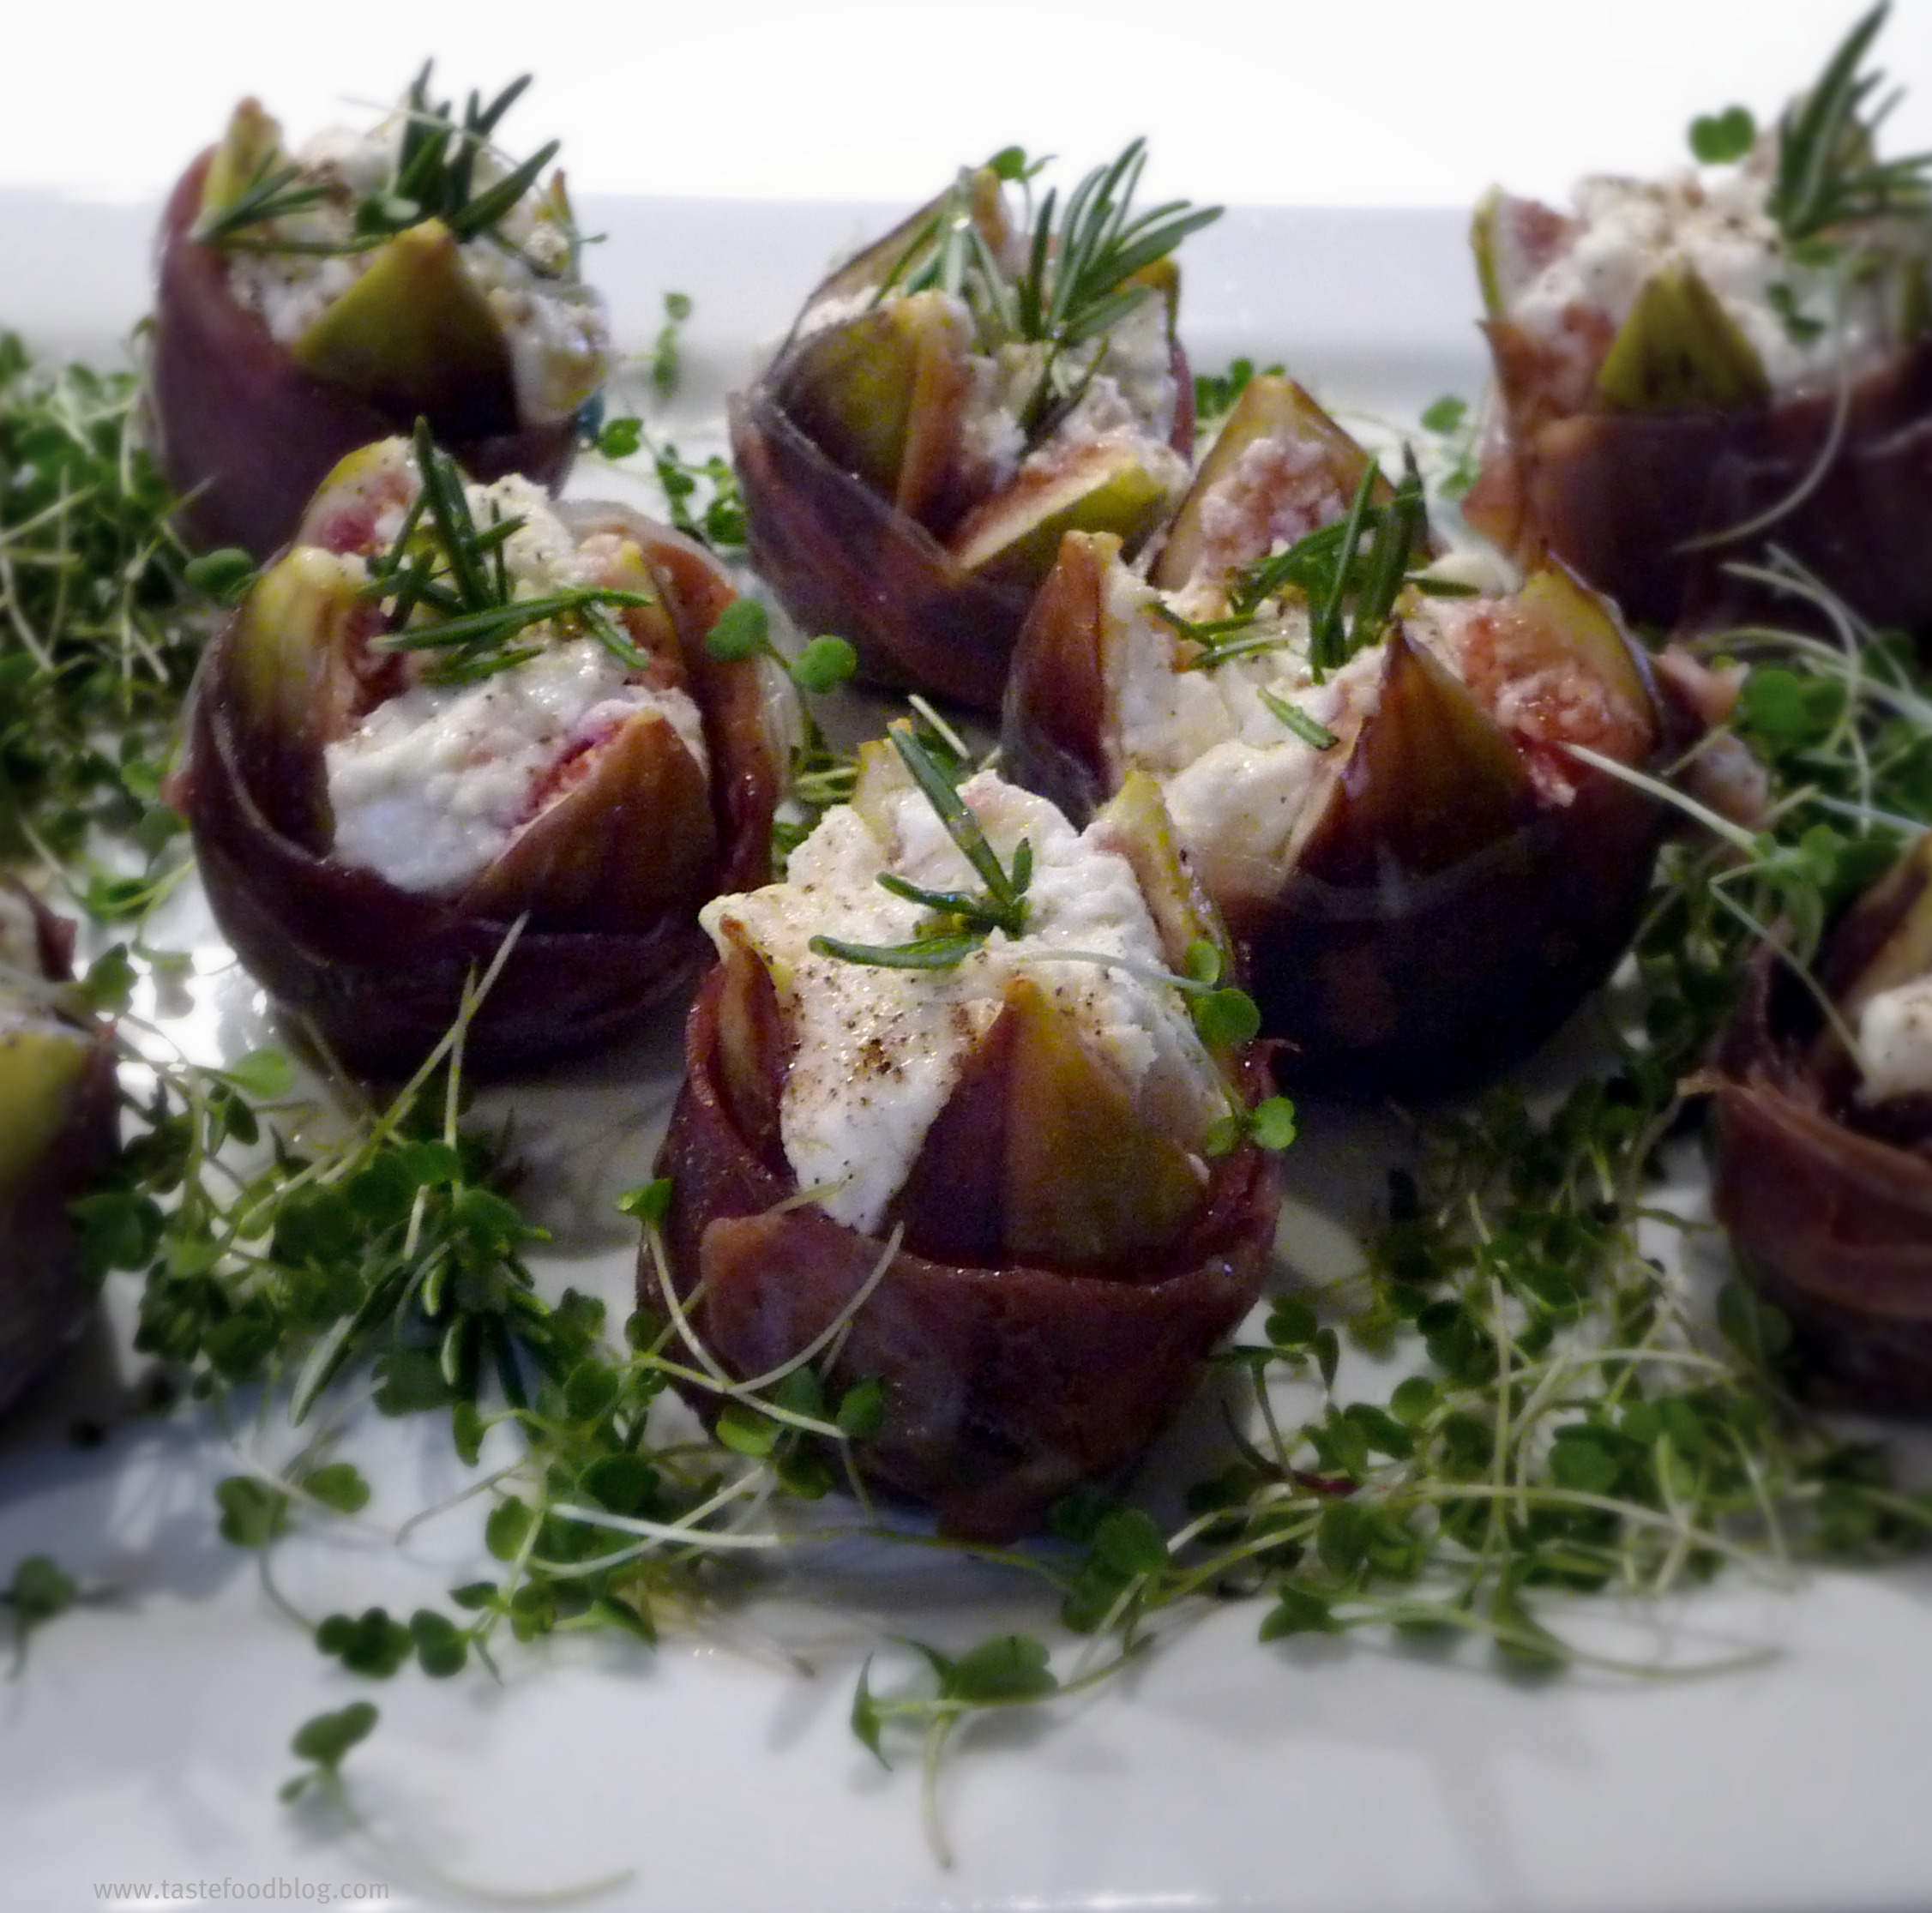 Stuffed Figs with Goat Cheese and Prosciutto